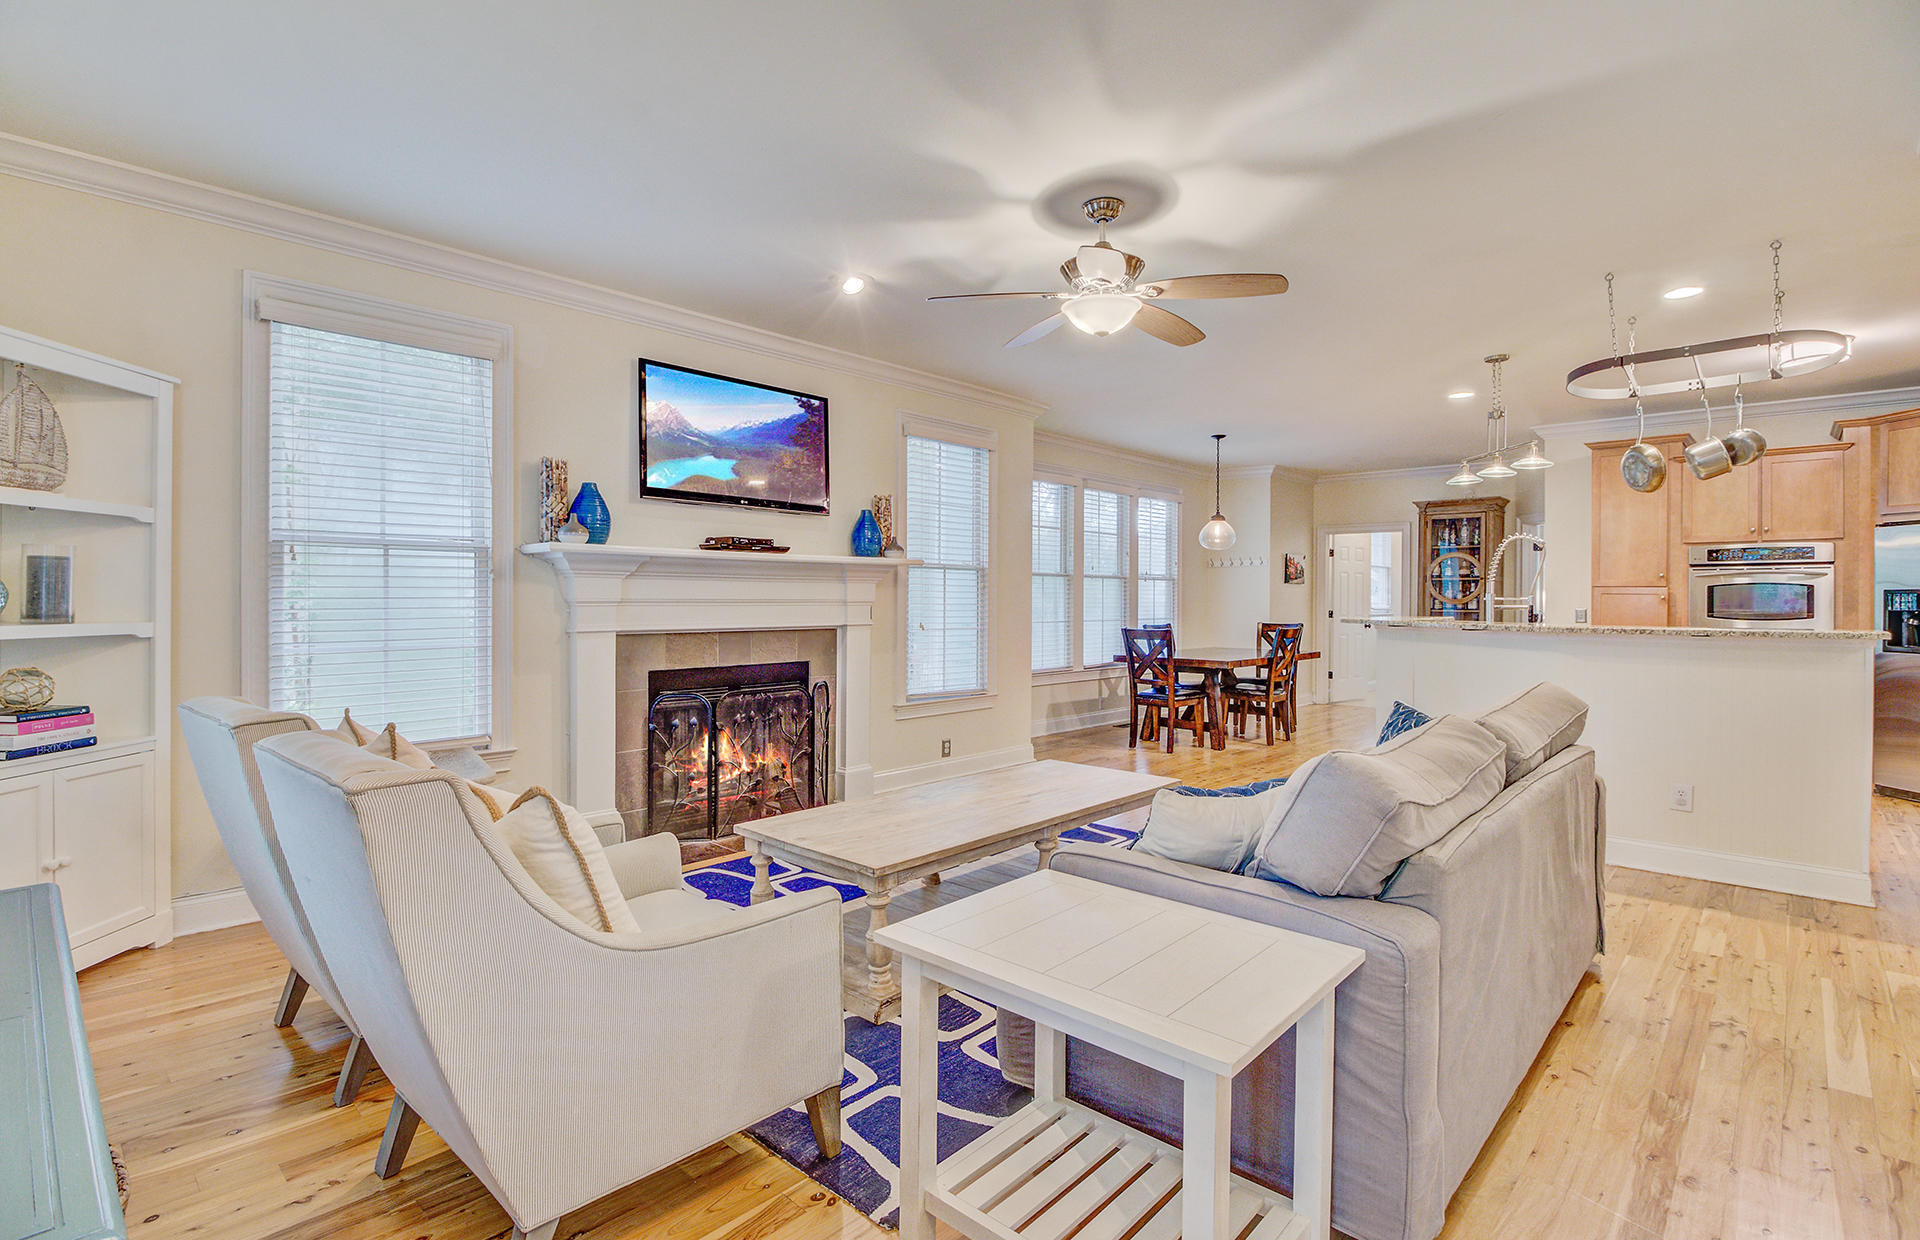 The Villages In St Johns Woods Homes For Sale - 5032 Coral Reef, Johns Island, SC - 31